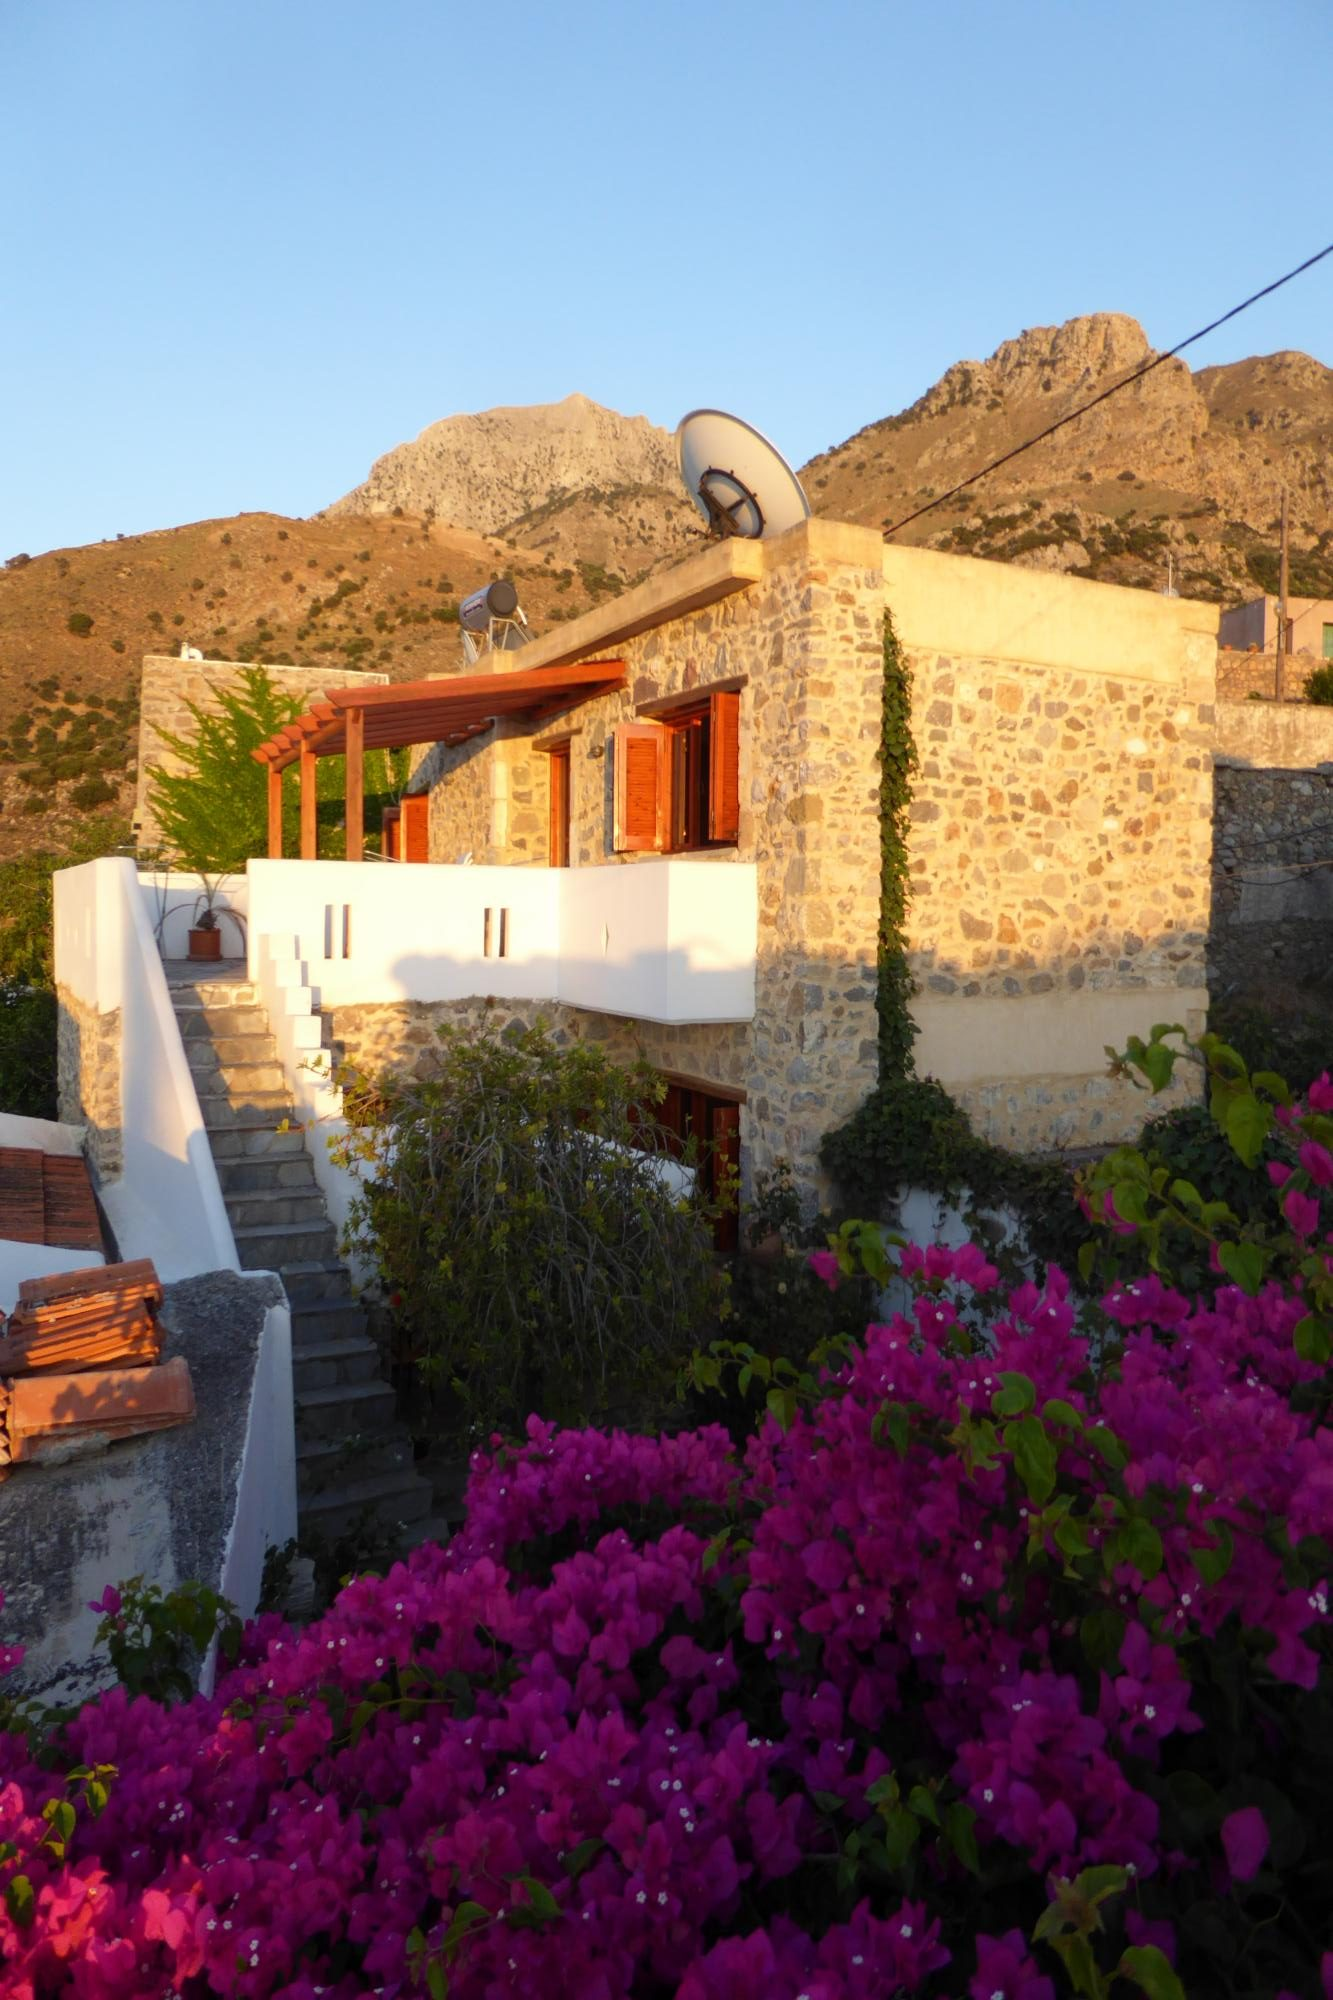 3 bedroom village stone house with garden and sea view.